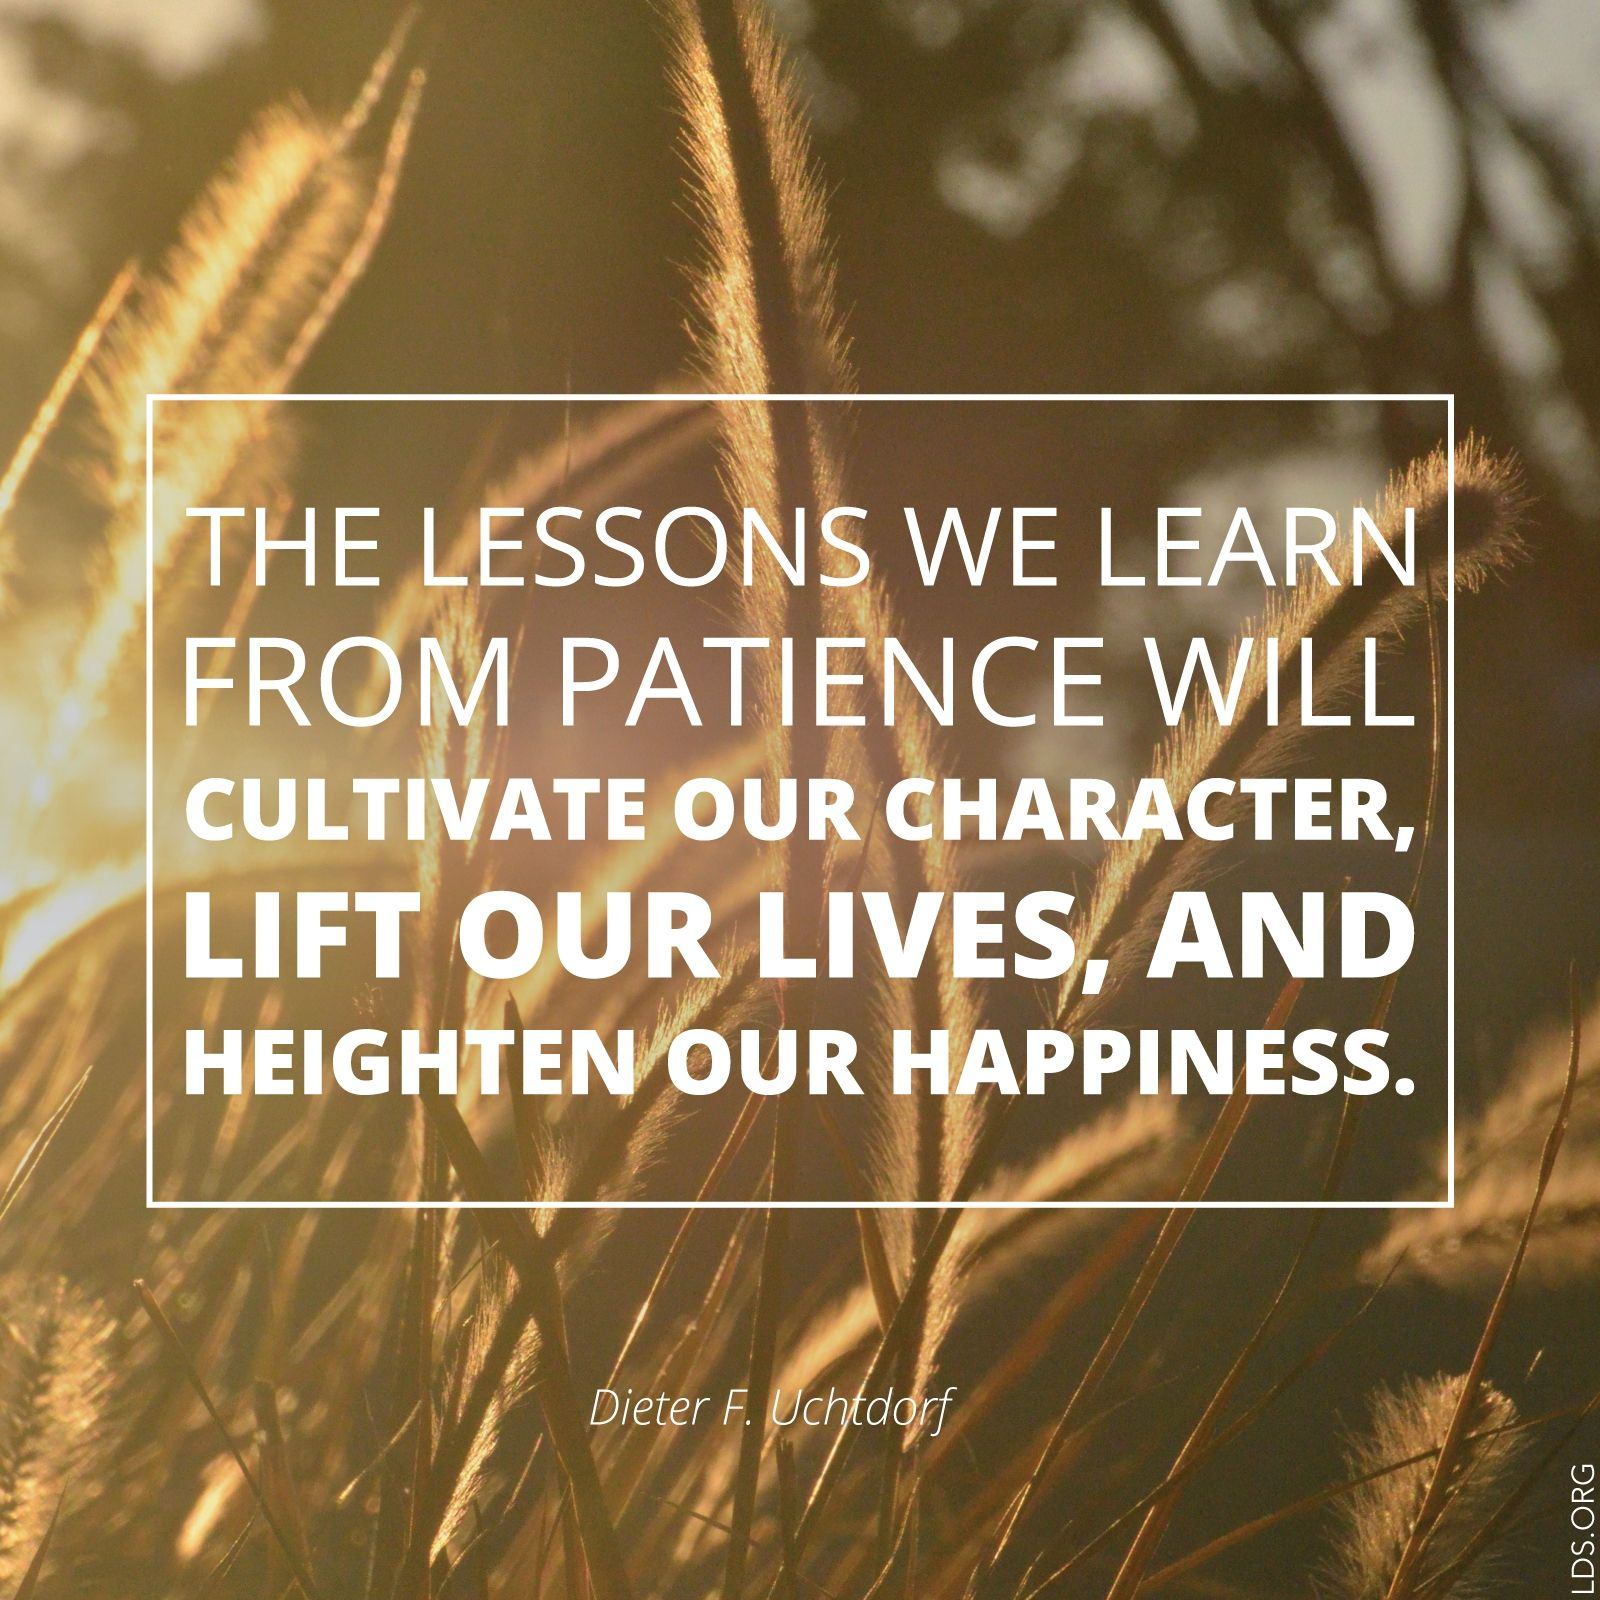 """""""The lessons we learn from patience will cultivate our character, lift our lives, and heighten our happiness.""""—President Dieter F. Uchtdorf"""